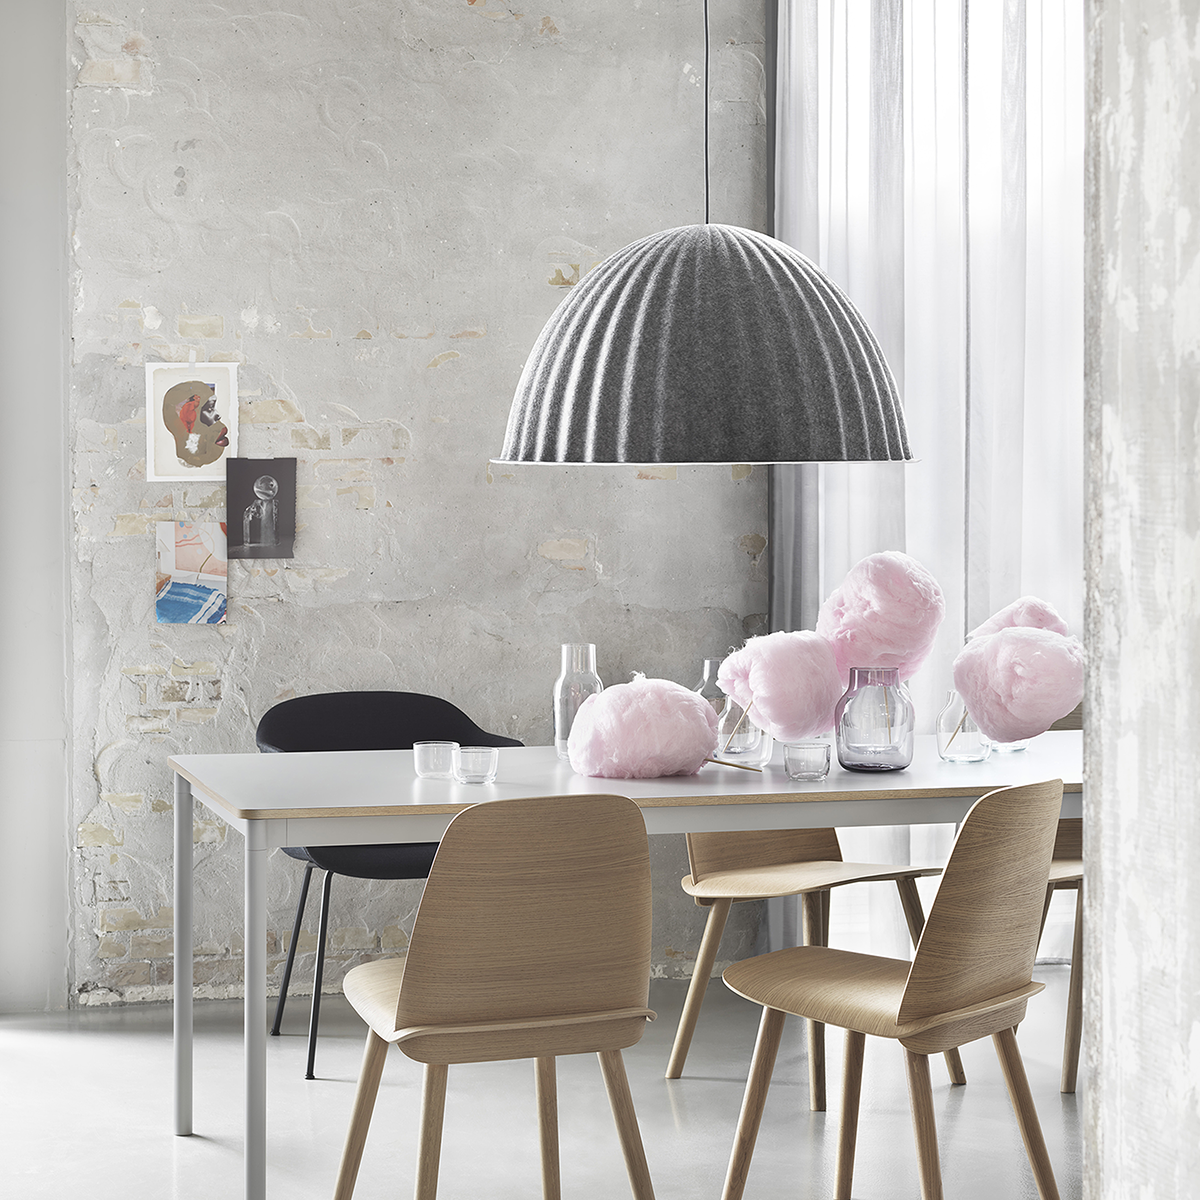 Muuto Under The Bell Pendant Light 82cm 鐘鈴 大型 餐桌吊燈